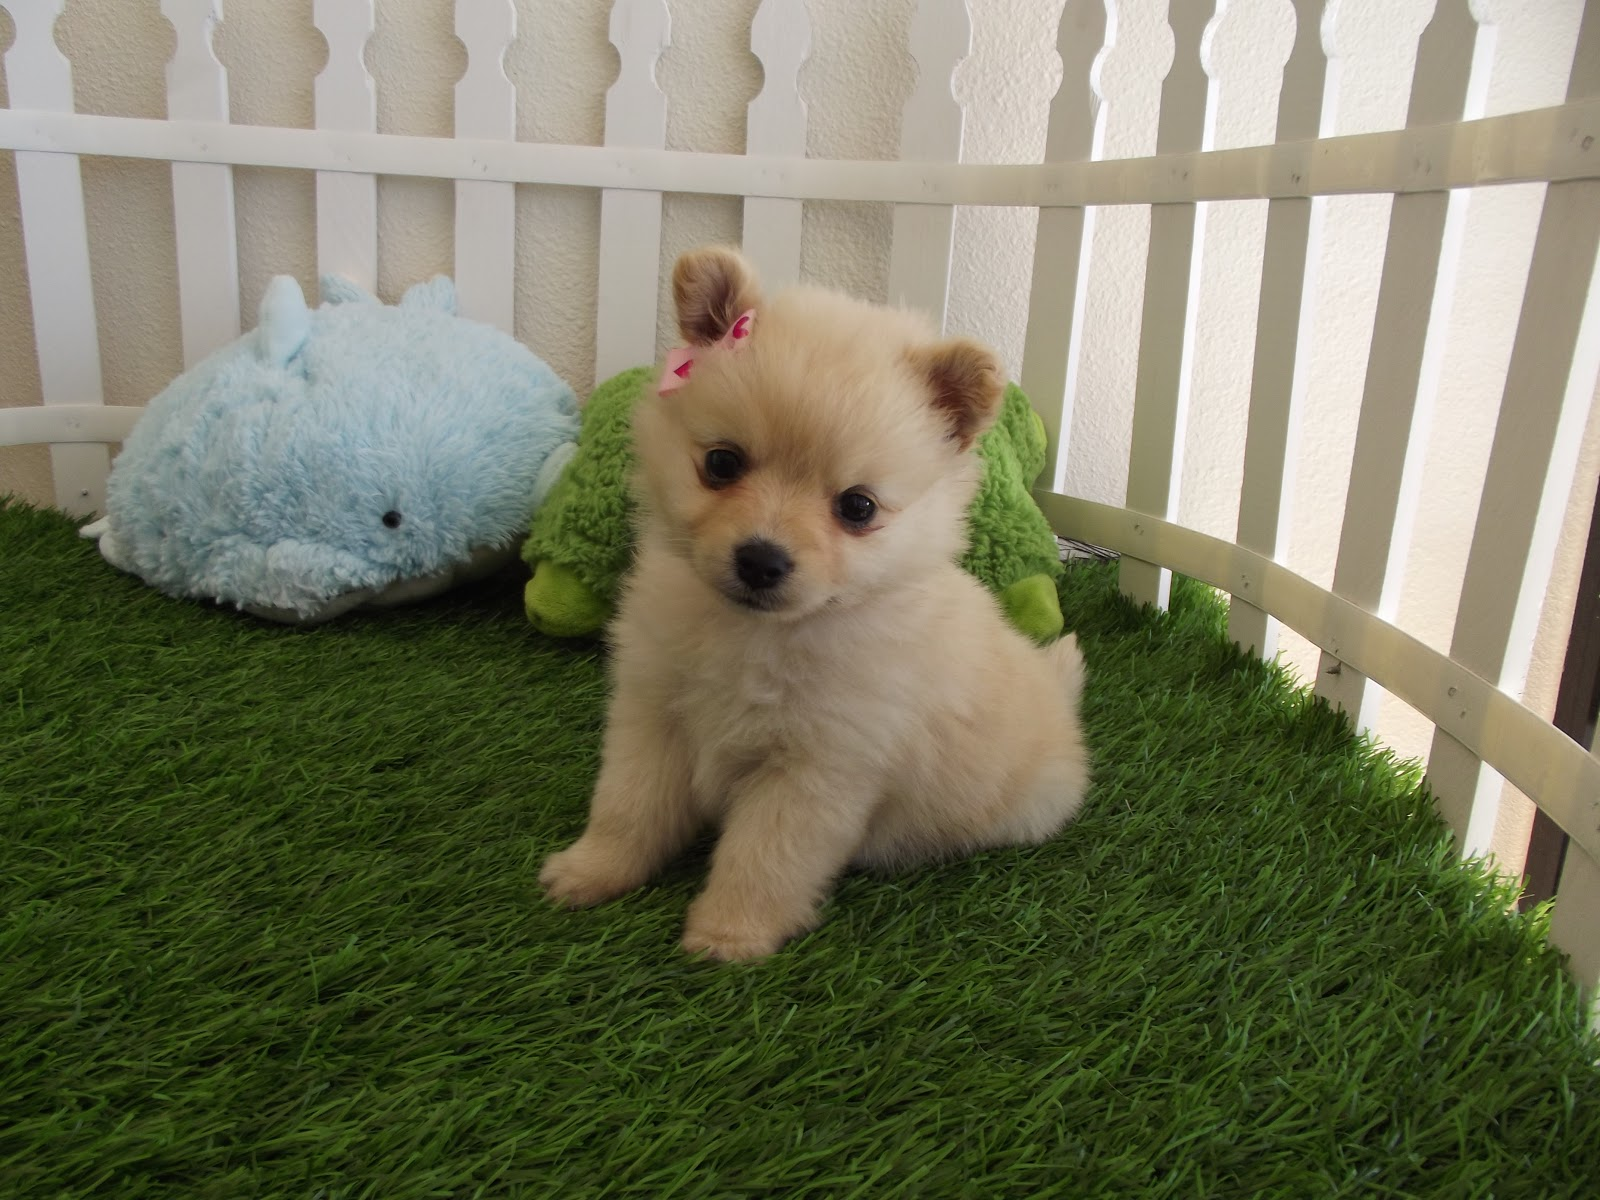 Collection Of Cute Puppy Wallpaper On HDWallpapers 1600x1200